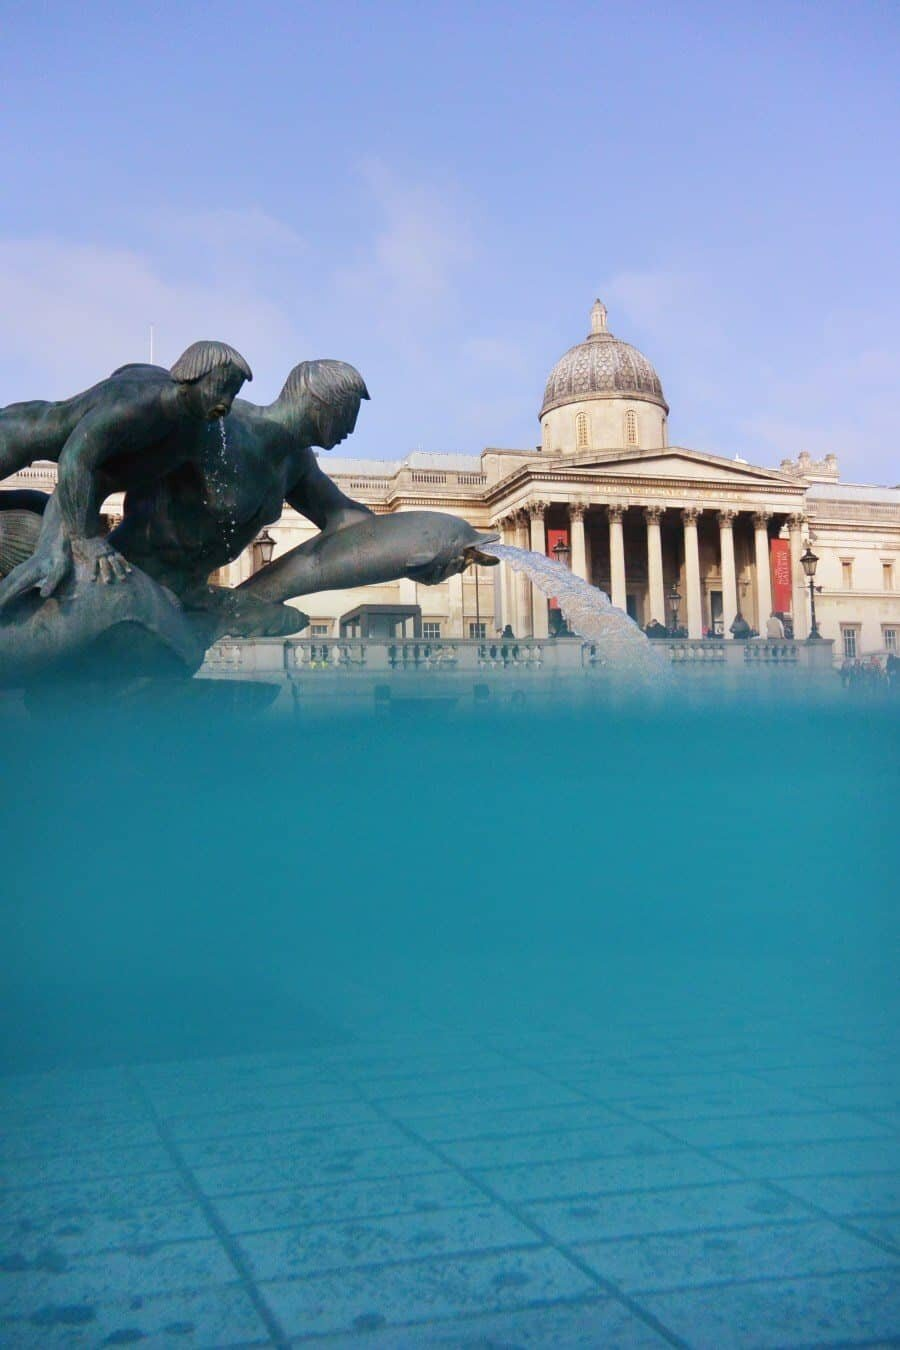 Trafalgar Square, London, United Kingdon